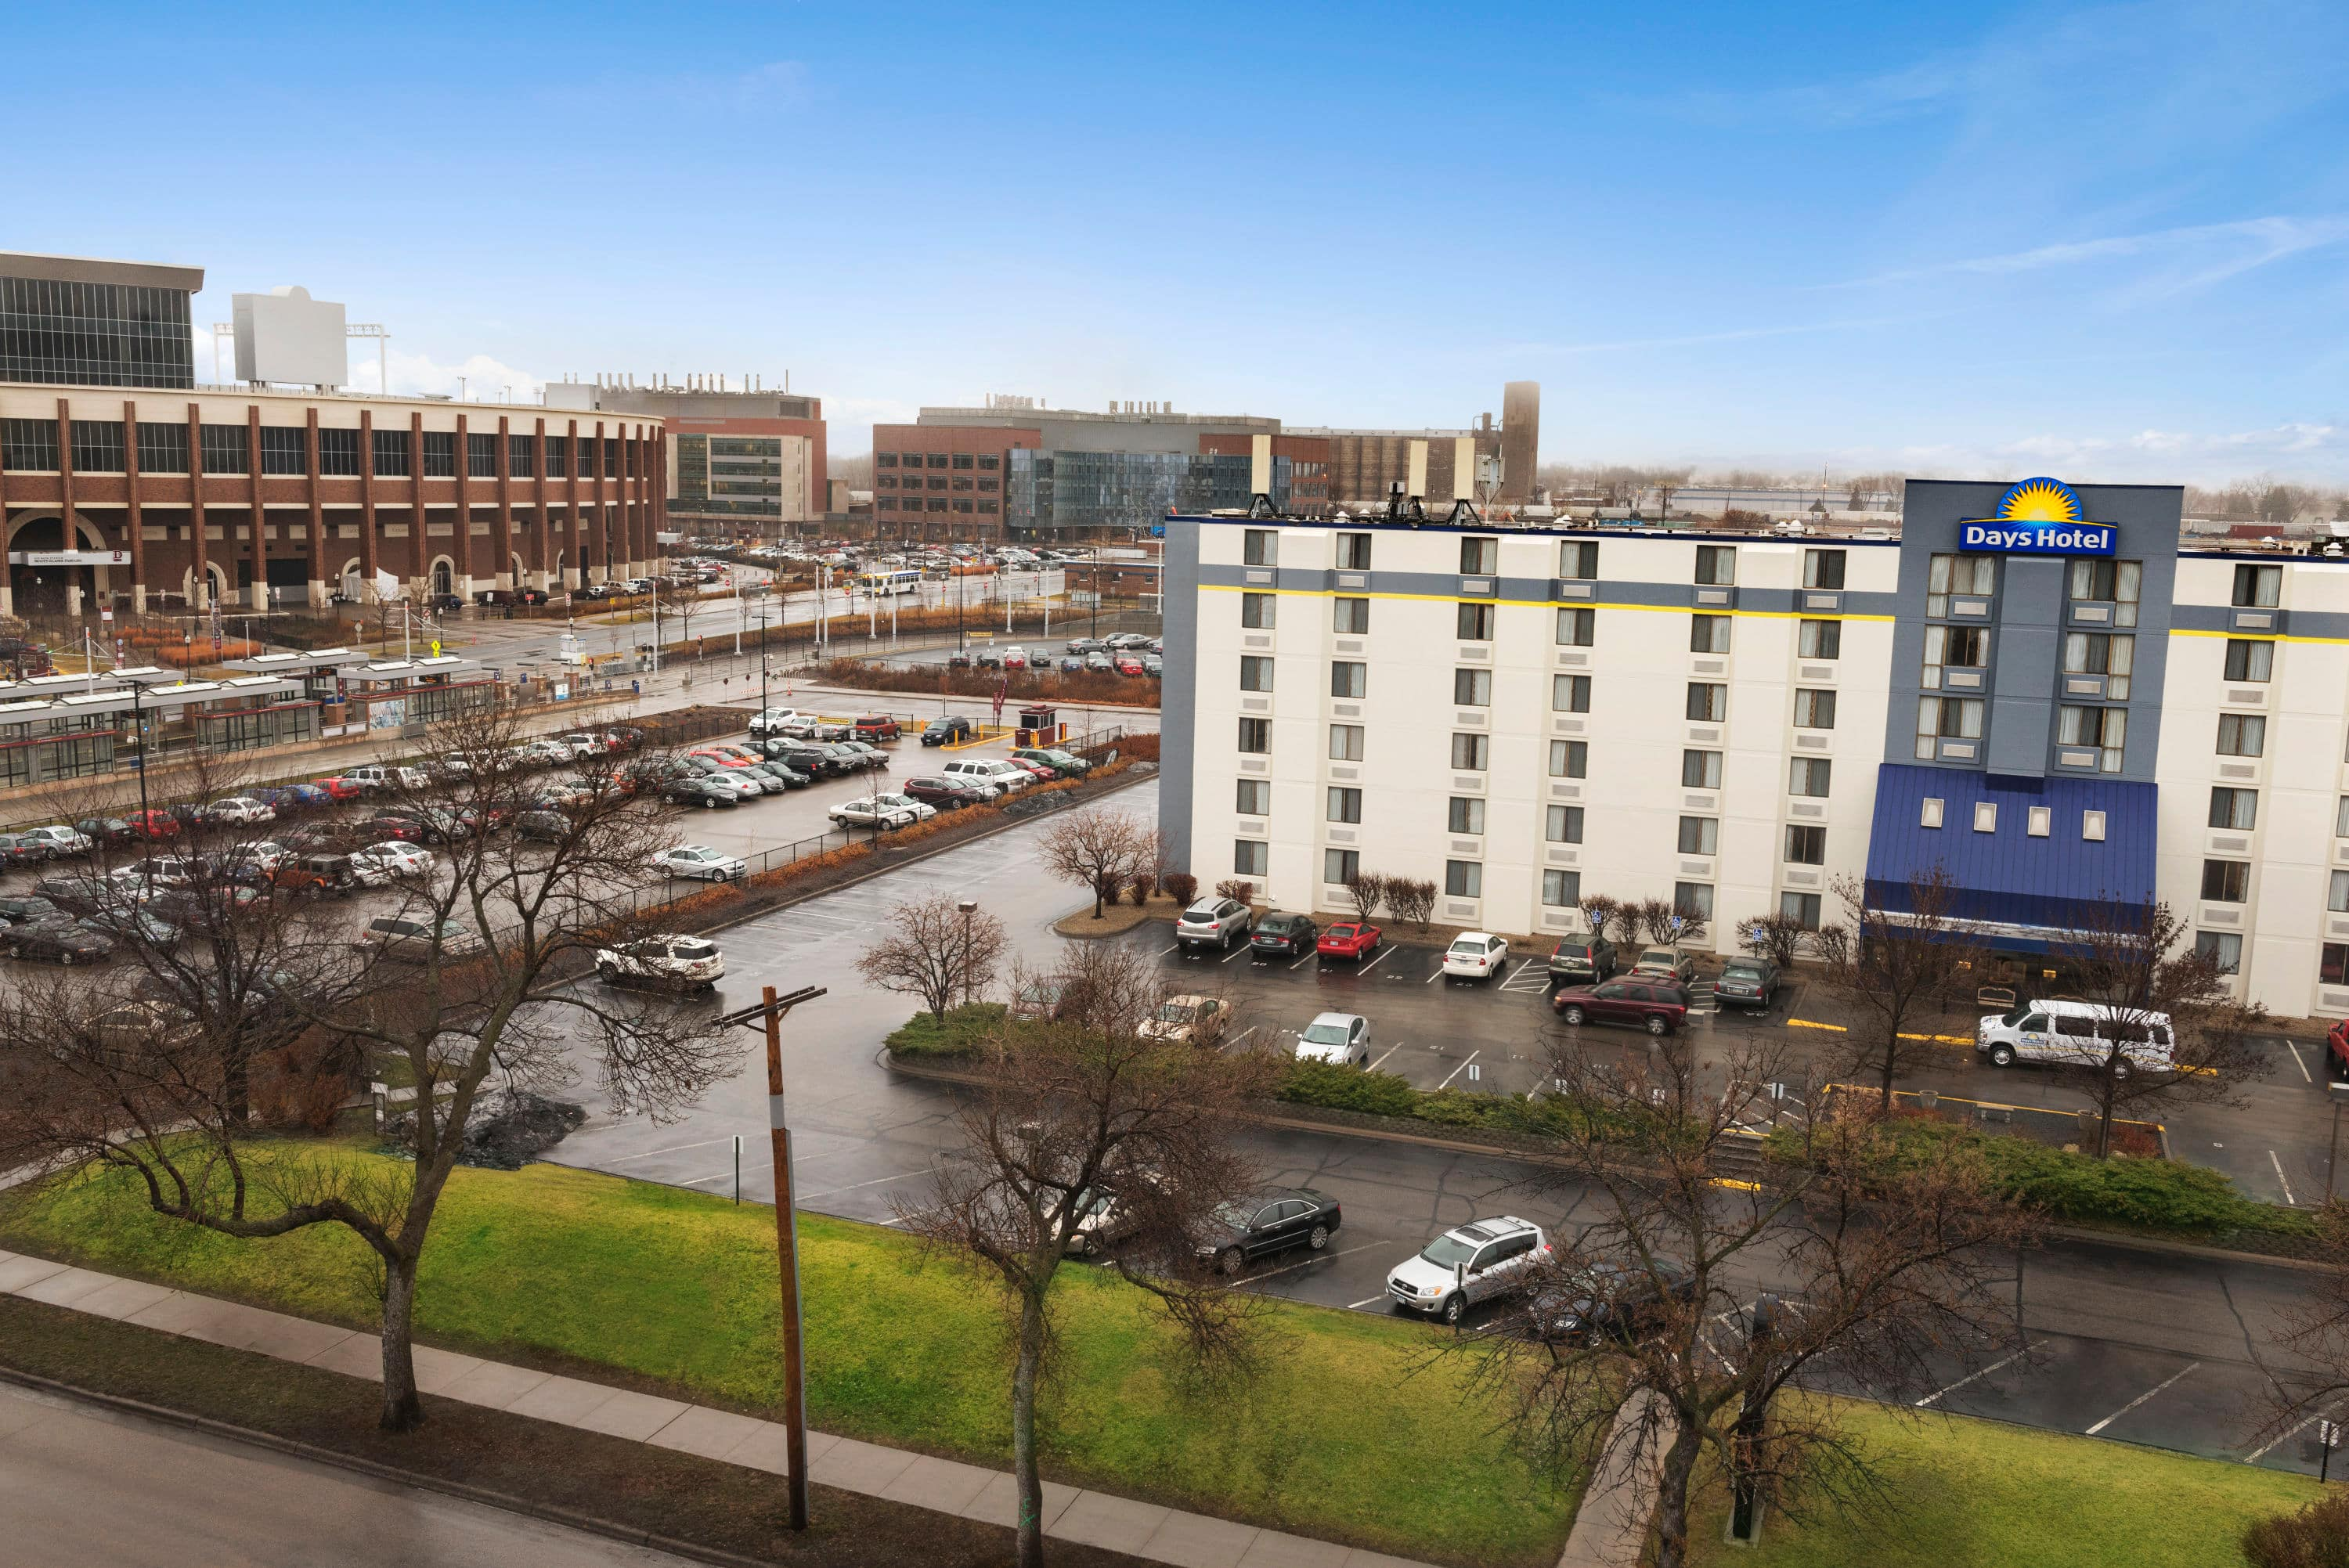 Perfect Exterior Of Days Hotel University Ave Se In Minneapolis Minnesota With Hotels Near Marshall Mn